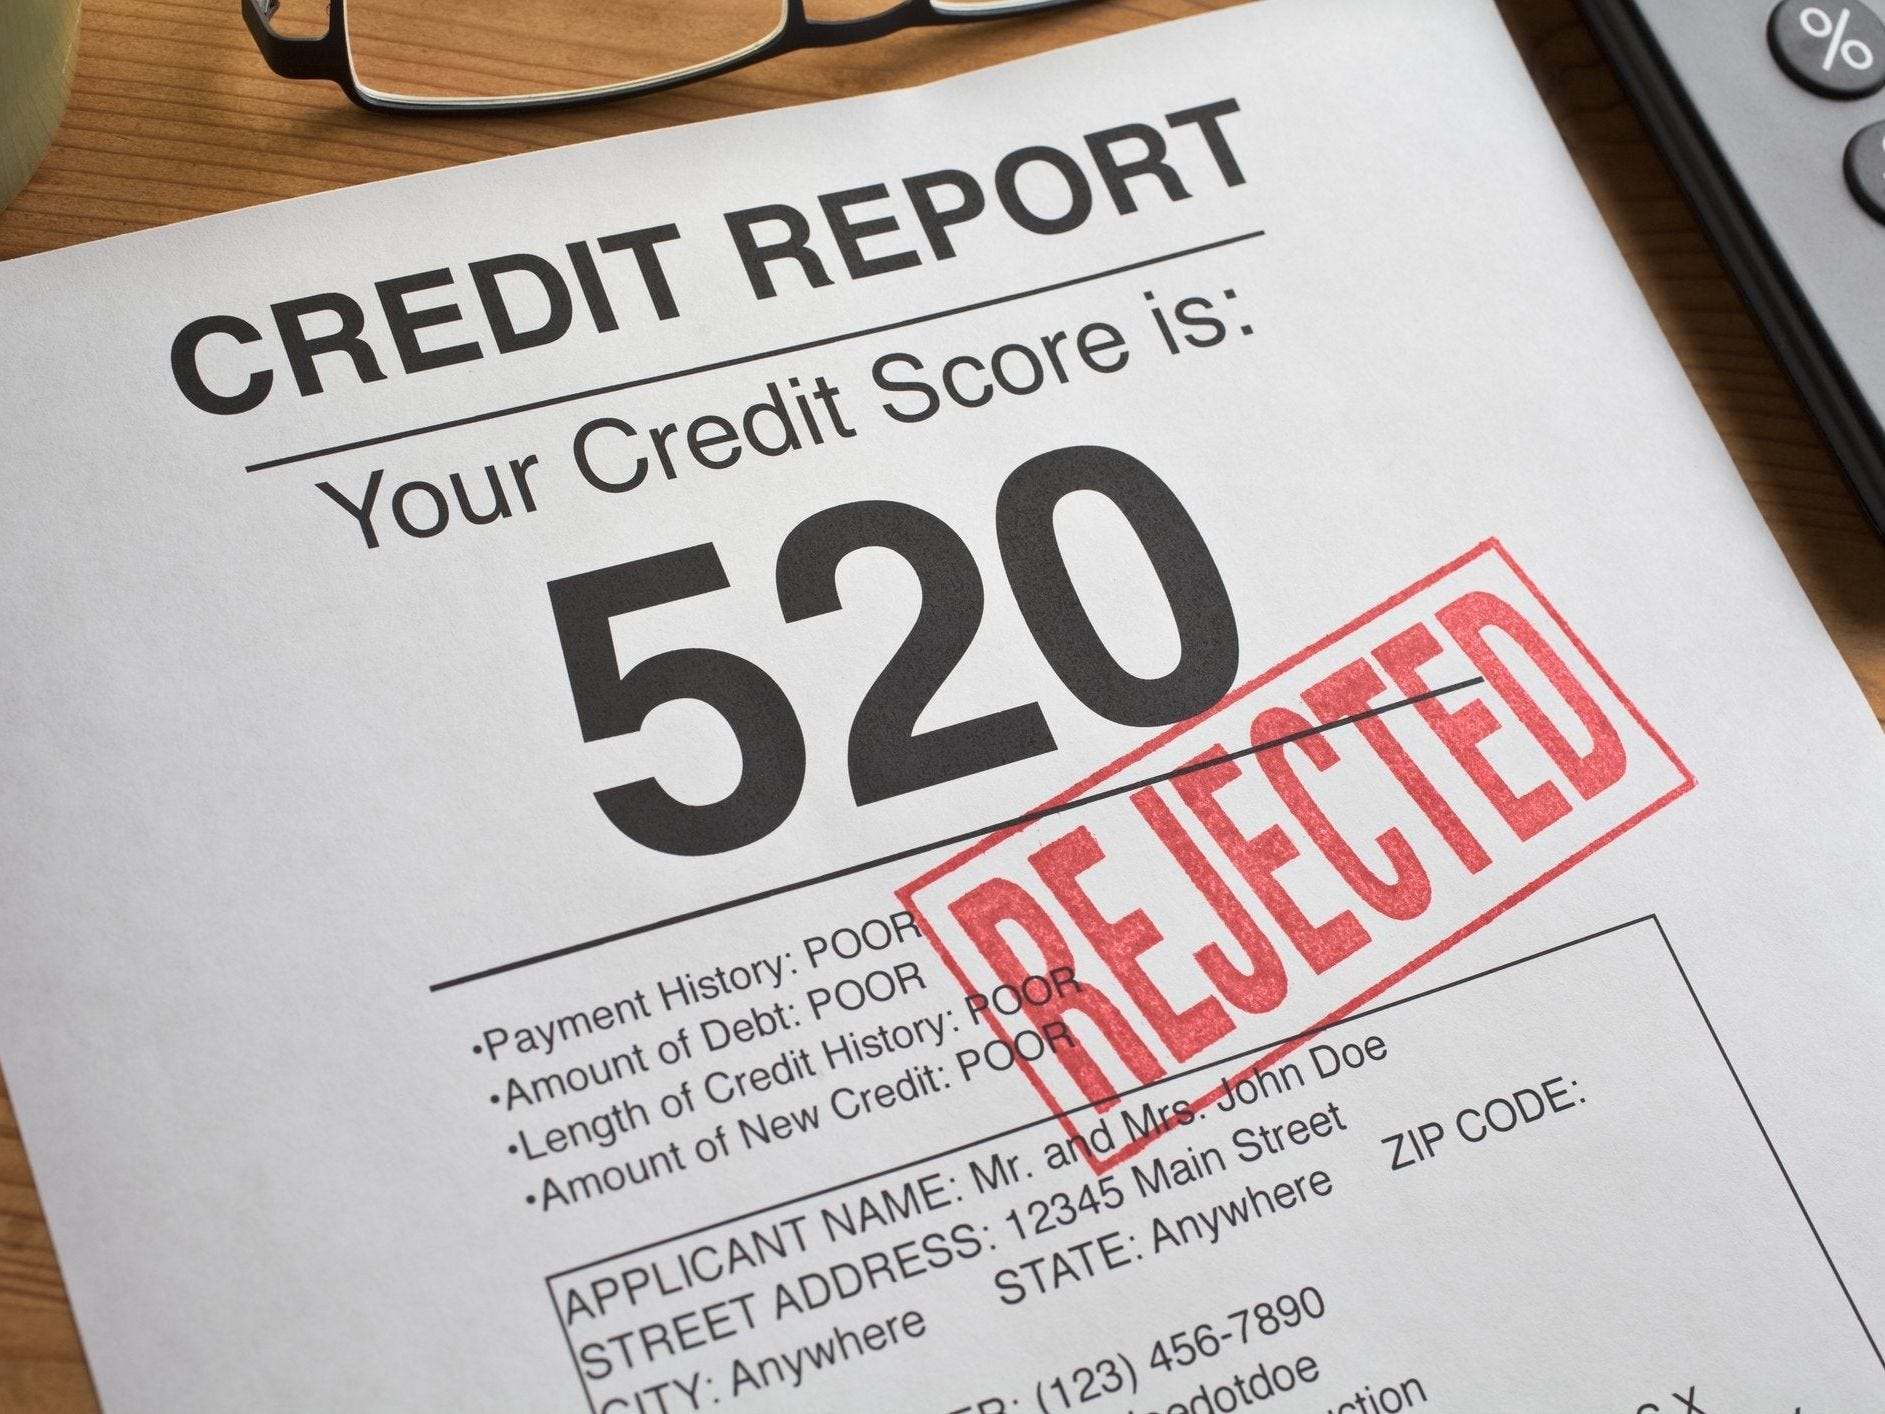 Errors on a credit report can end up hurting your credit score. Consumer watchdogs suggest that you request a copy of your credit report at www.annualcreditreport.com before shopping for a loan.